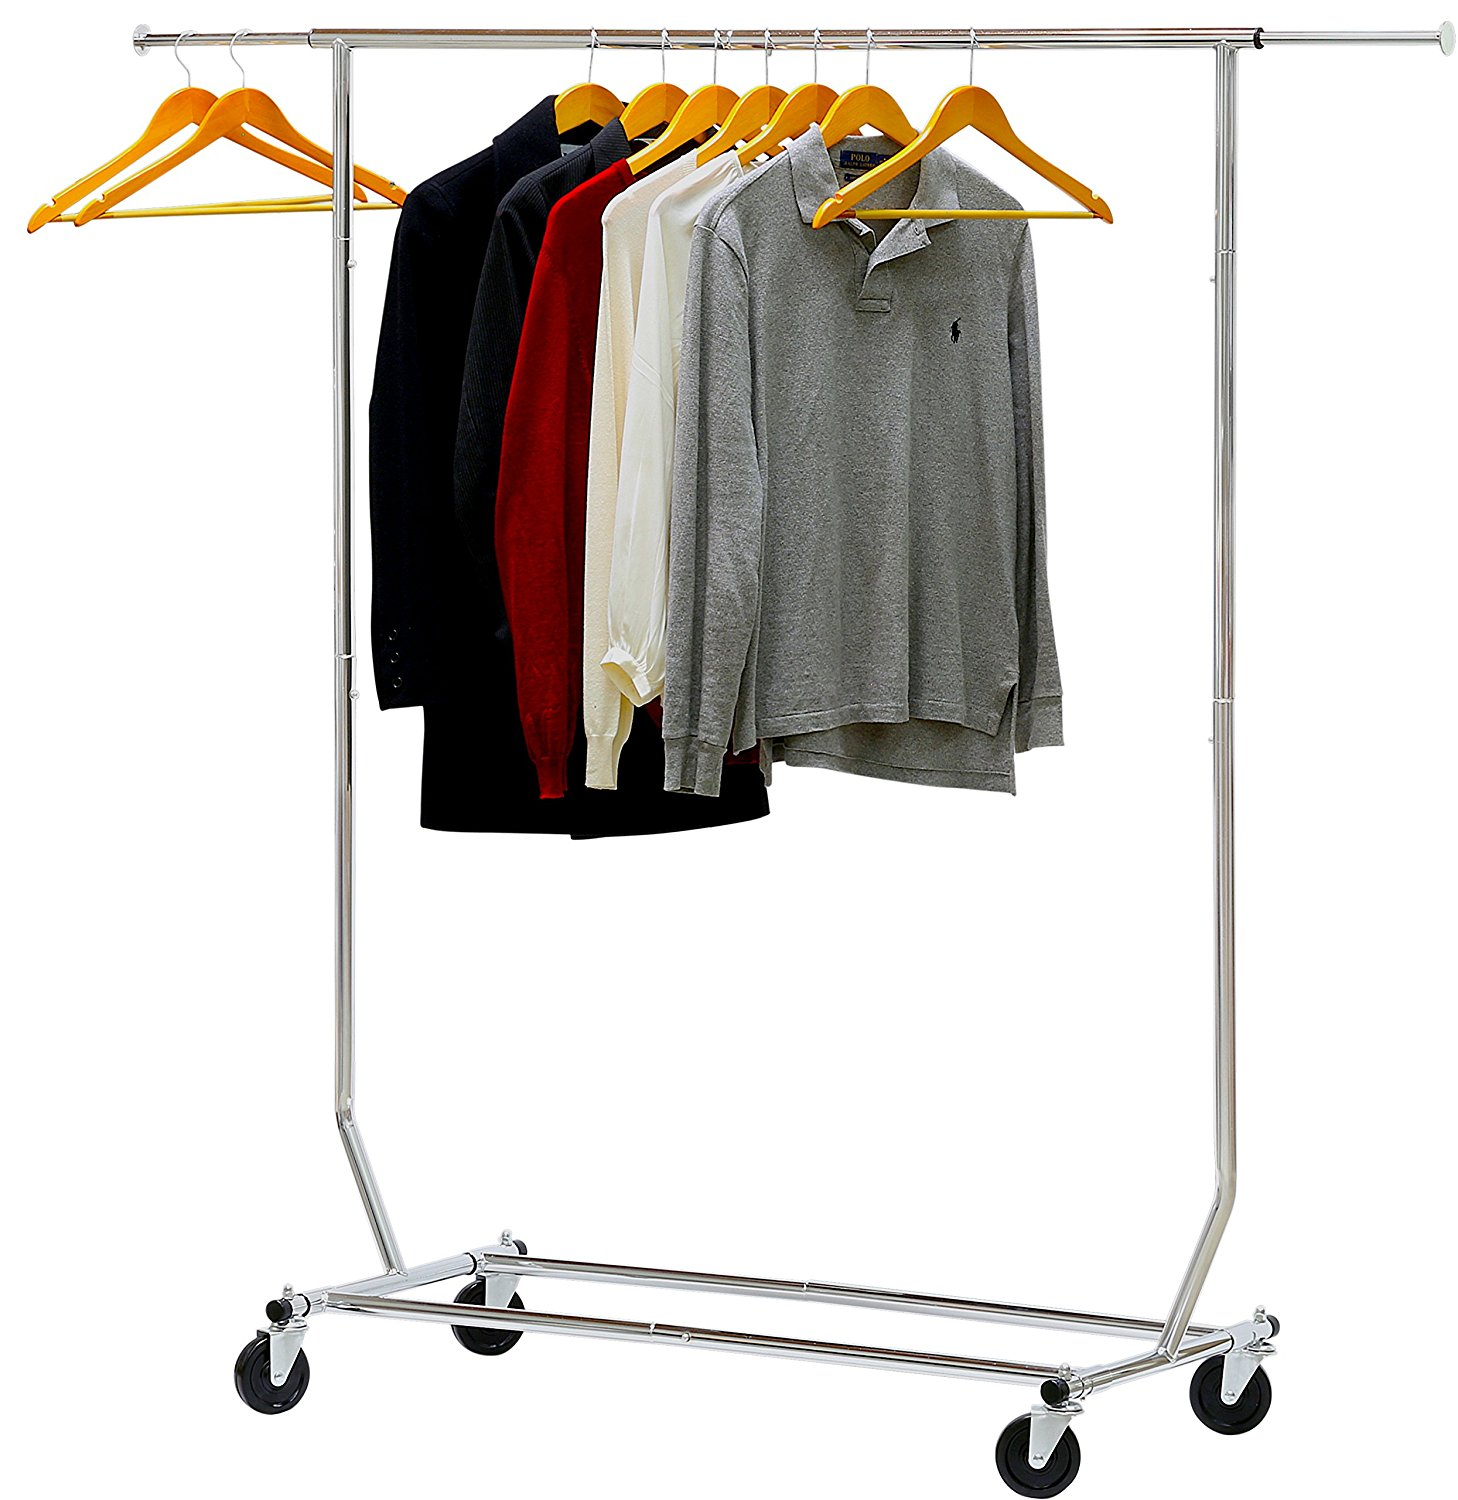 Clothing Store Display Racks